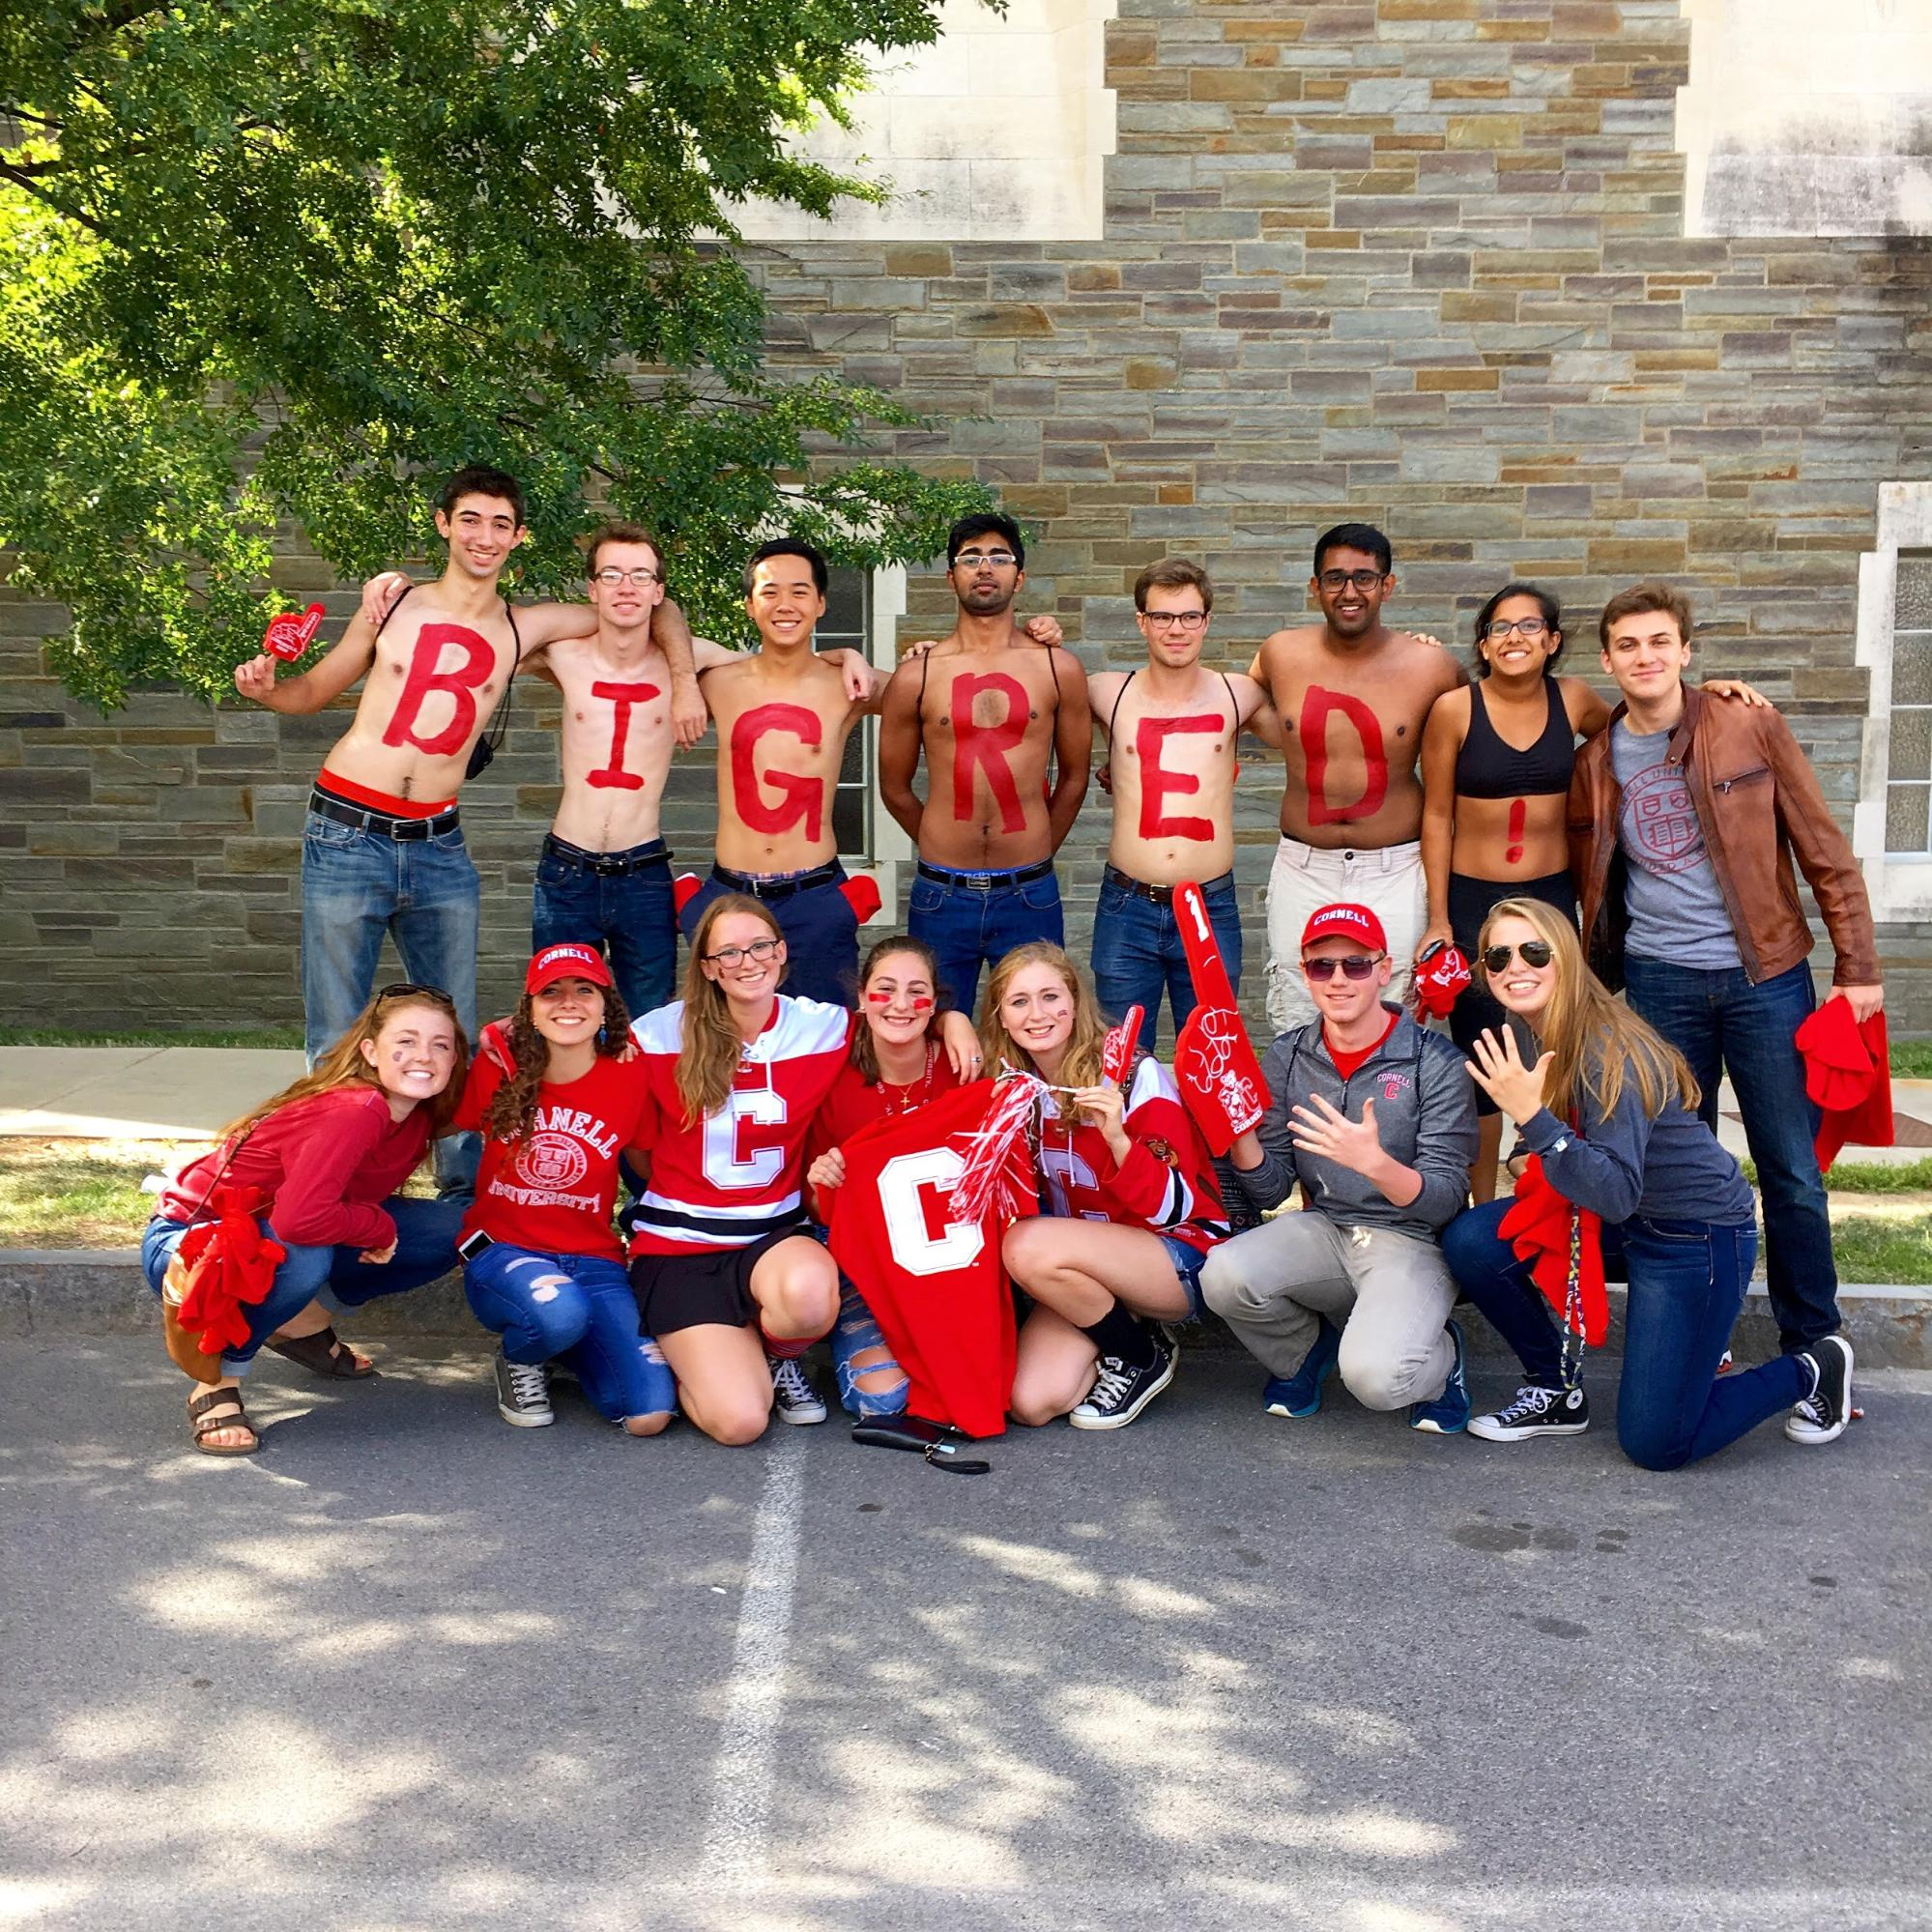 Alex and some friends showing school spirit before the Homecoming football game, Go Big Red!